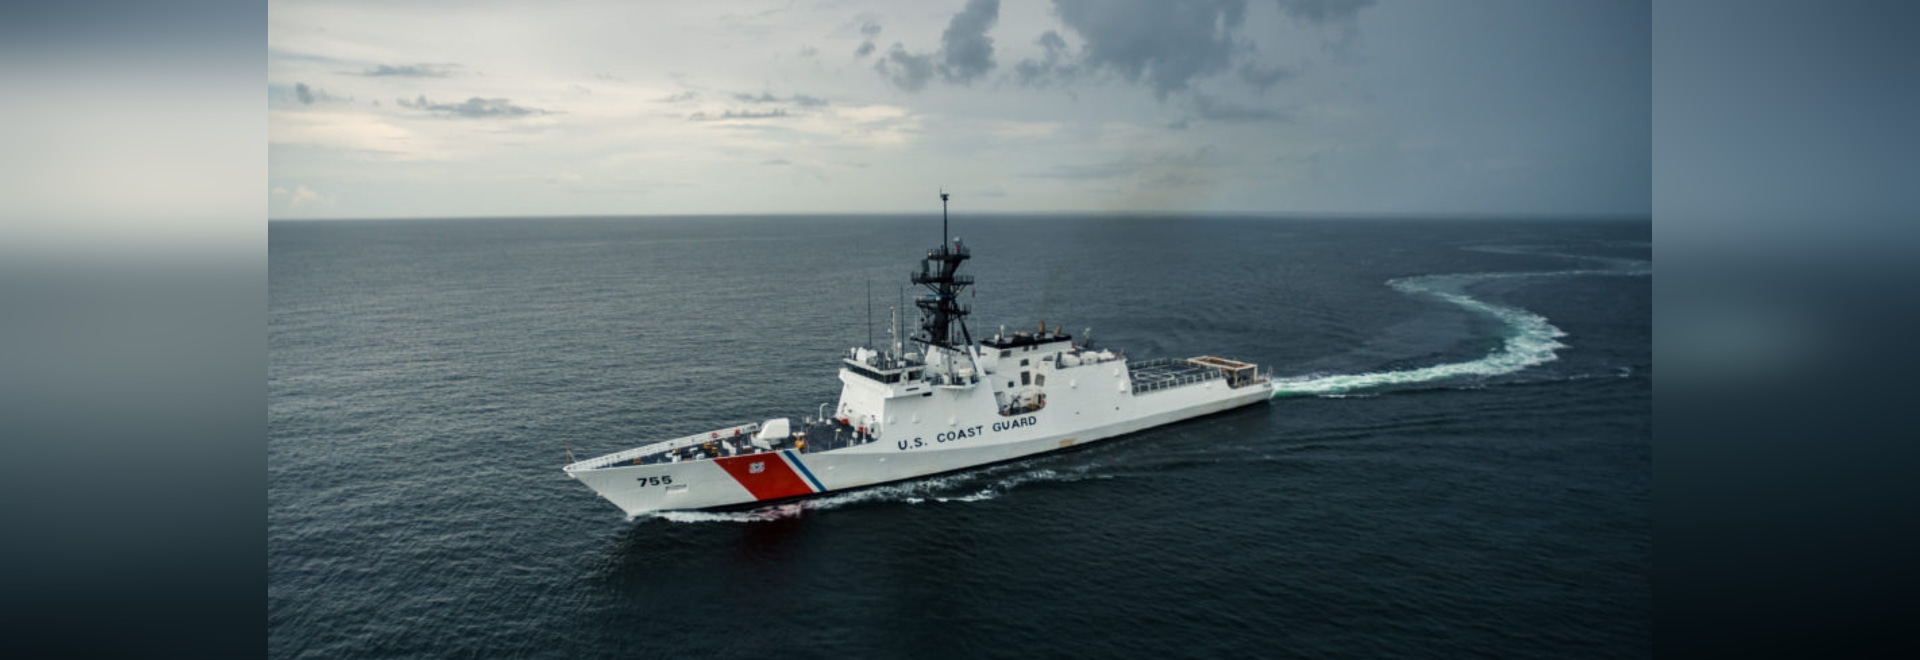 Recently delivered National Security Cutter Munro (WMSL 755)